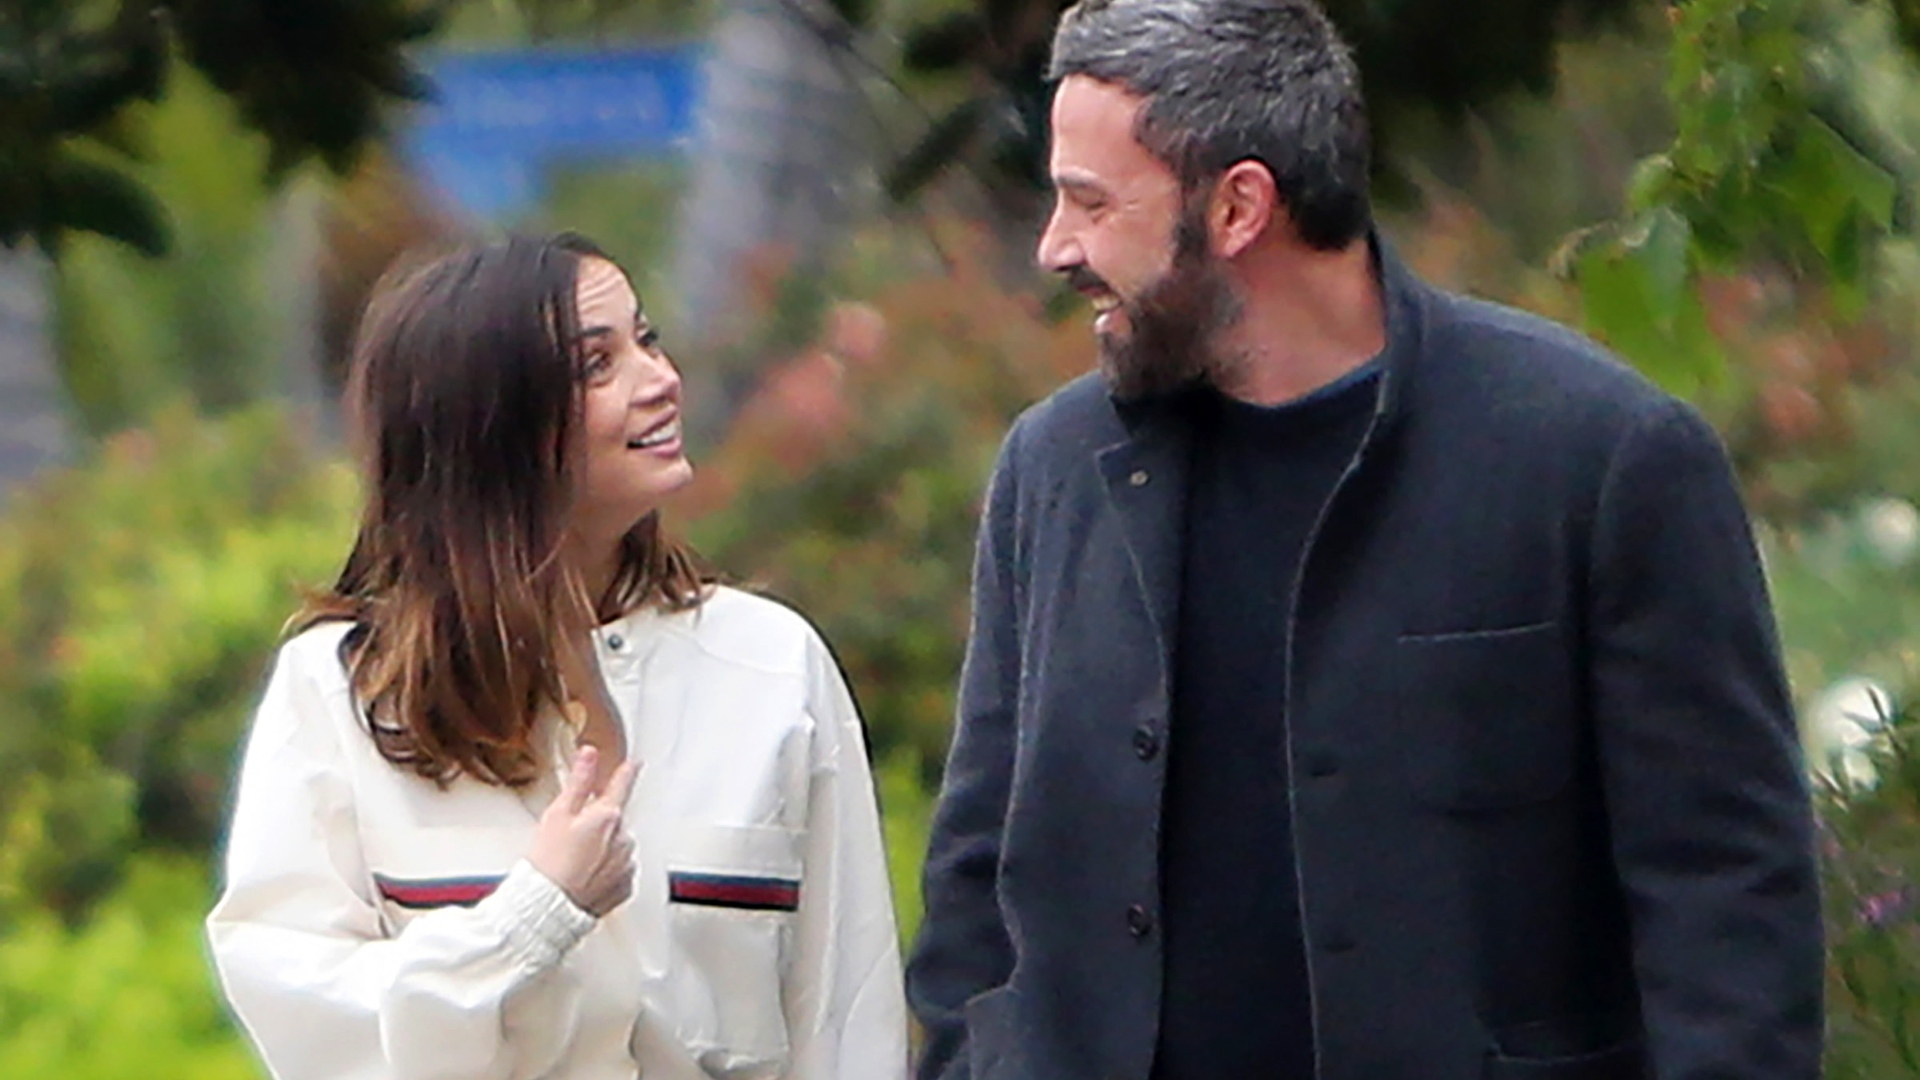 Ben Affleck, Ana de Armas Breakup Rumors and Real Truth